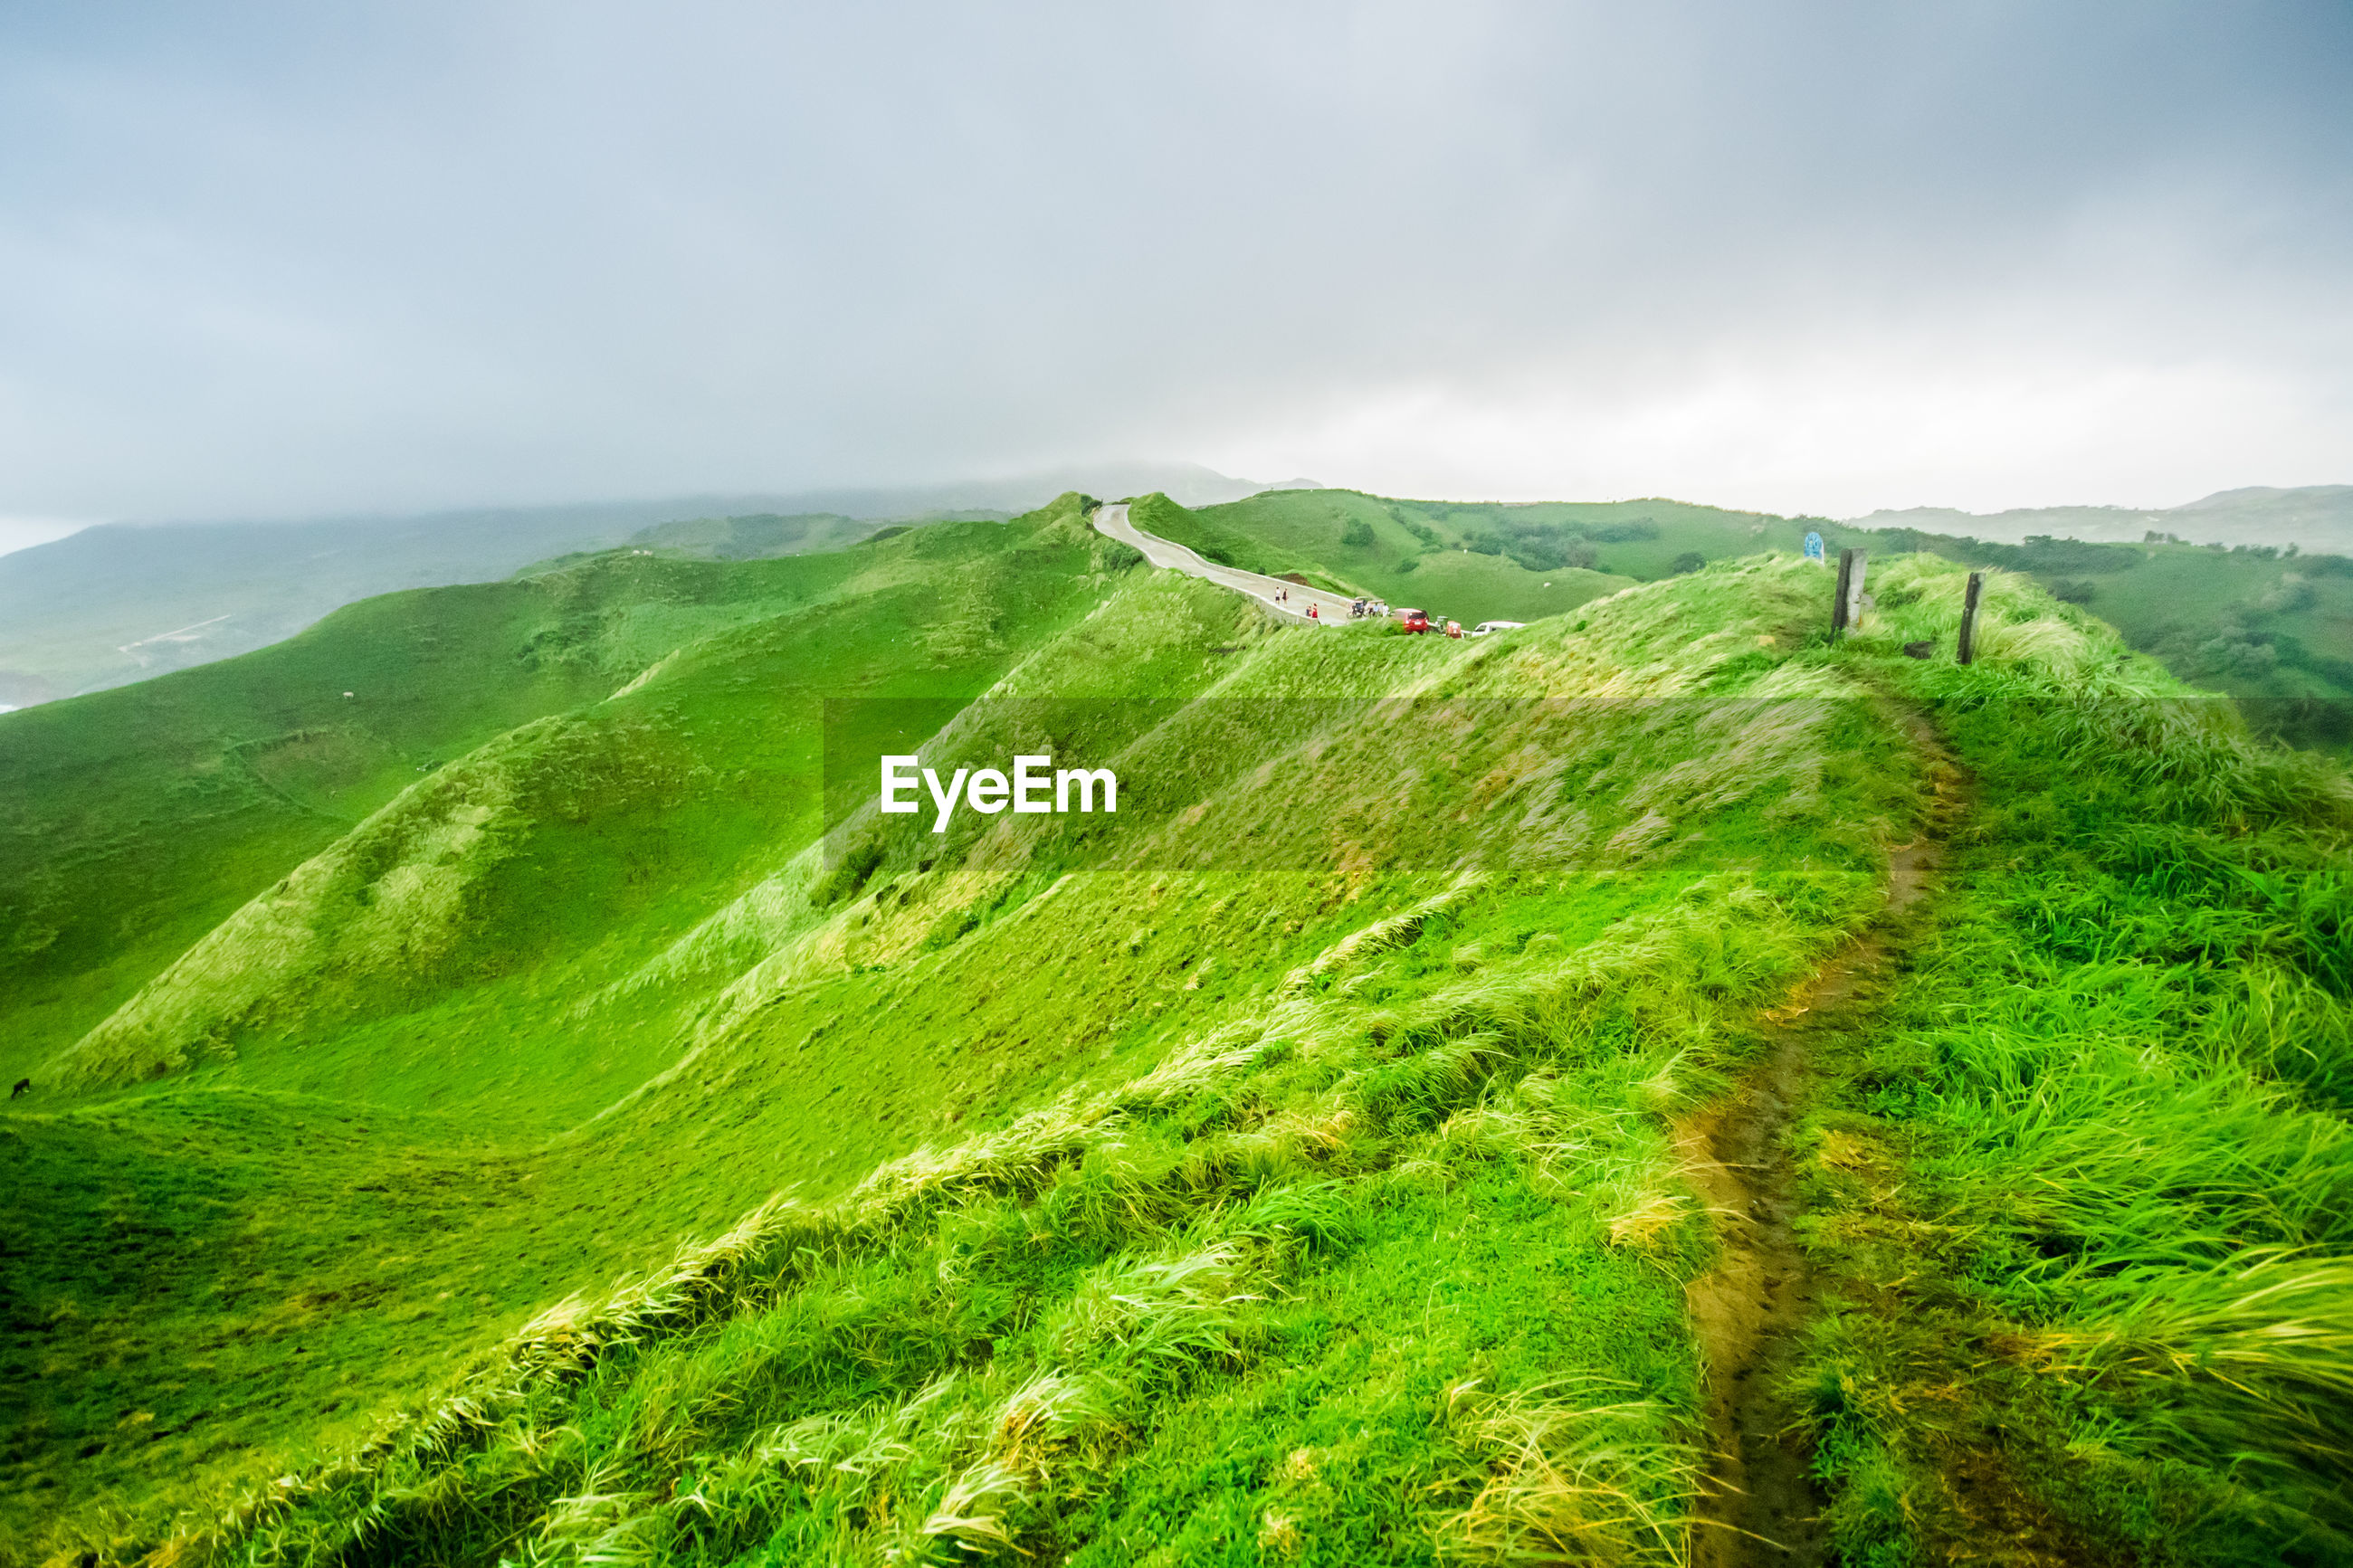 Scenic view of green landscape against sky. rolling hills of iraya, basco, batanes, philippines.